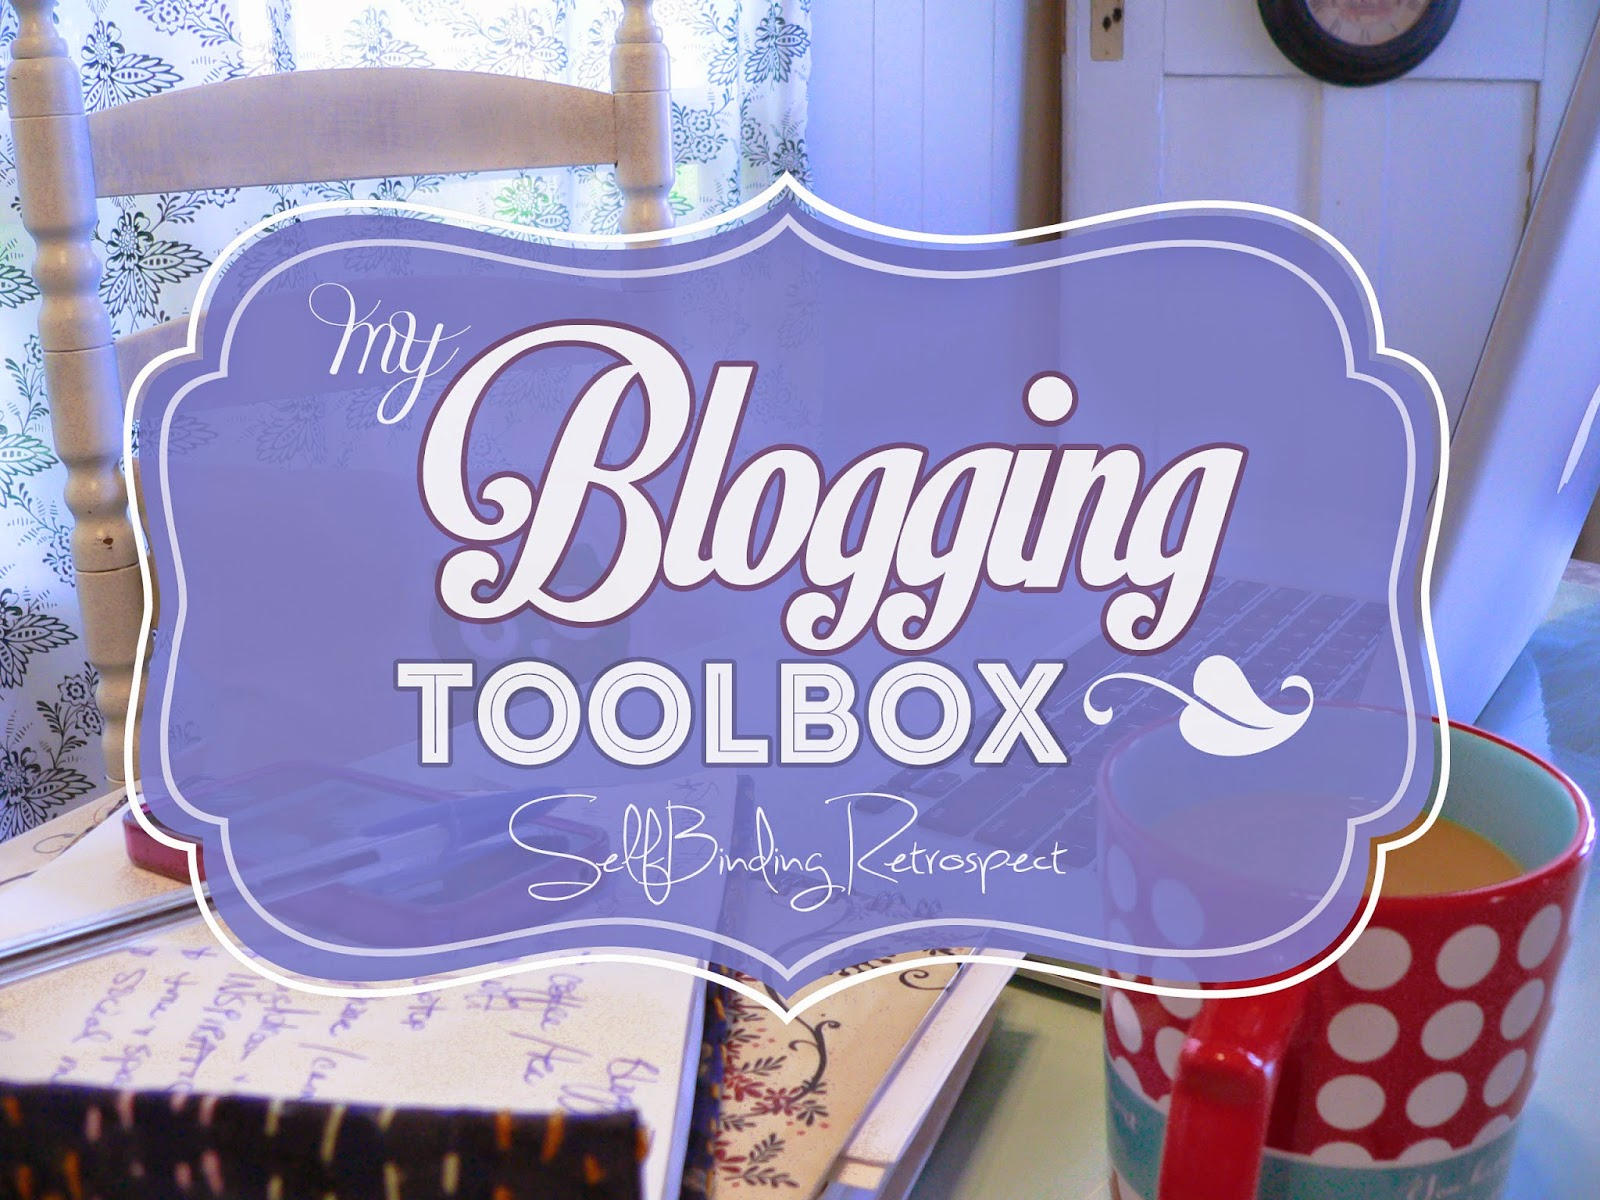 My Blogging Tool Box - SelfBinding Retrospect by Alanna Rusnak